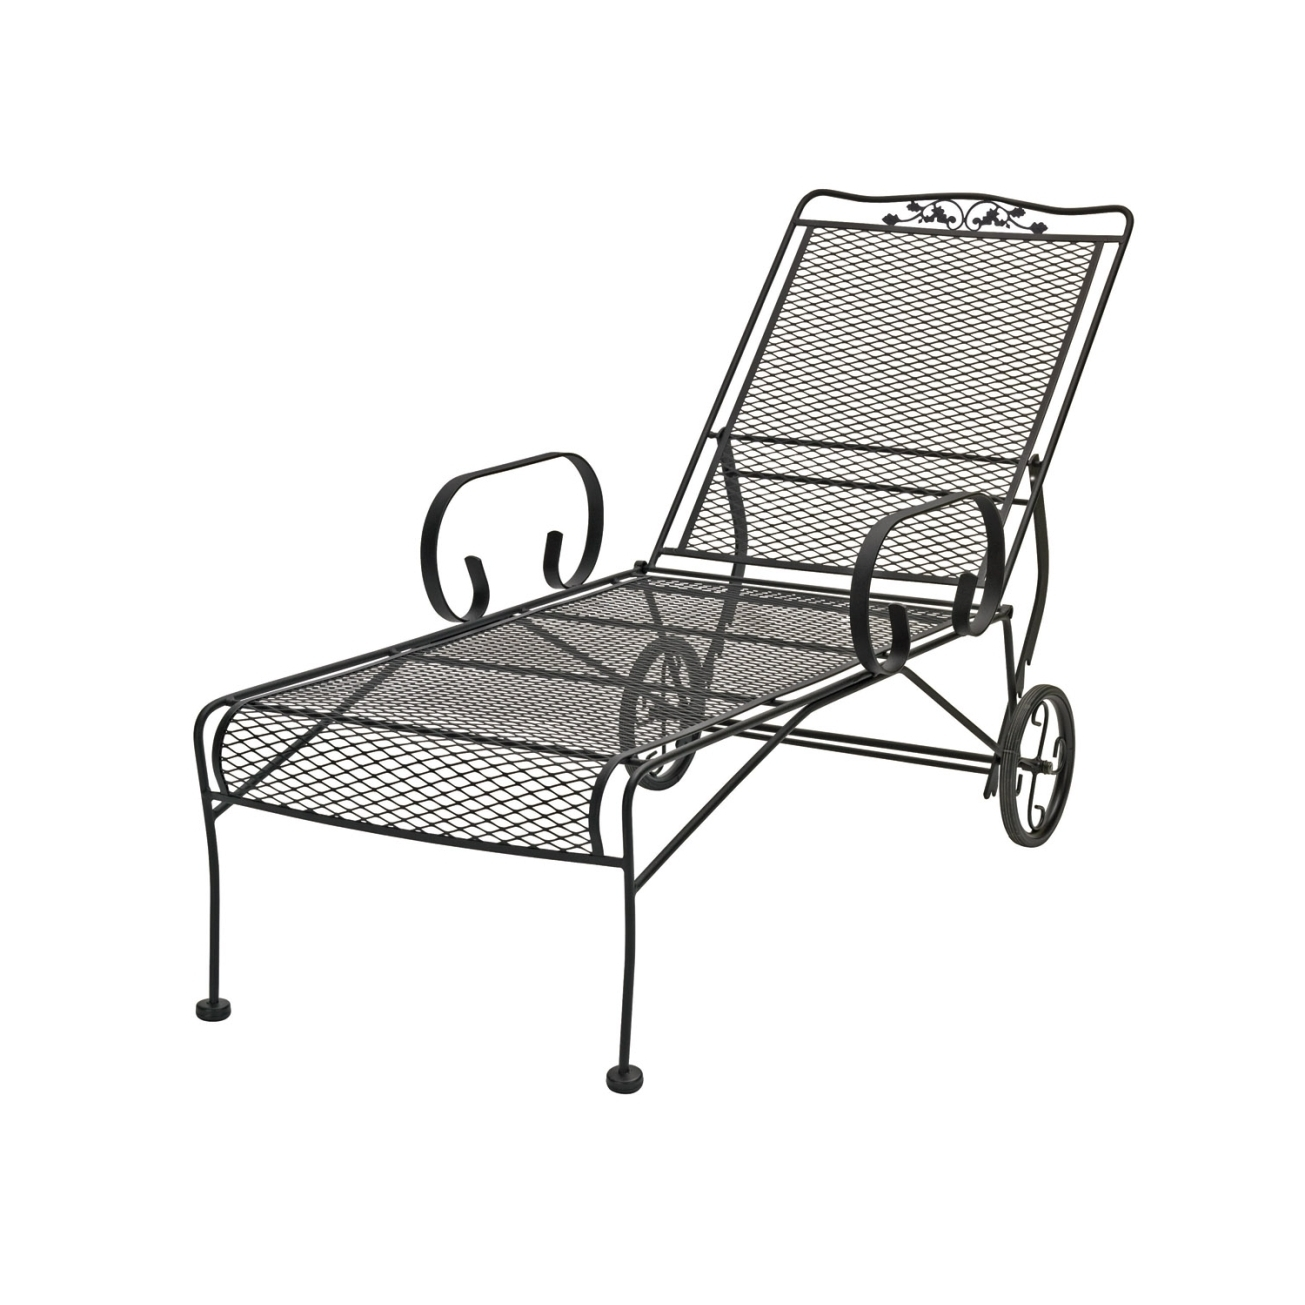 Aluminum Chaise Lounge Chairs With Regard To Well Known Lovable Patio Chaise Lounge Chairs Outdoor Lounge Chairs Outdoor (View 4 of 15)